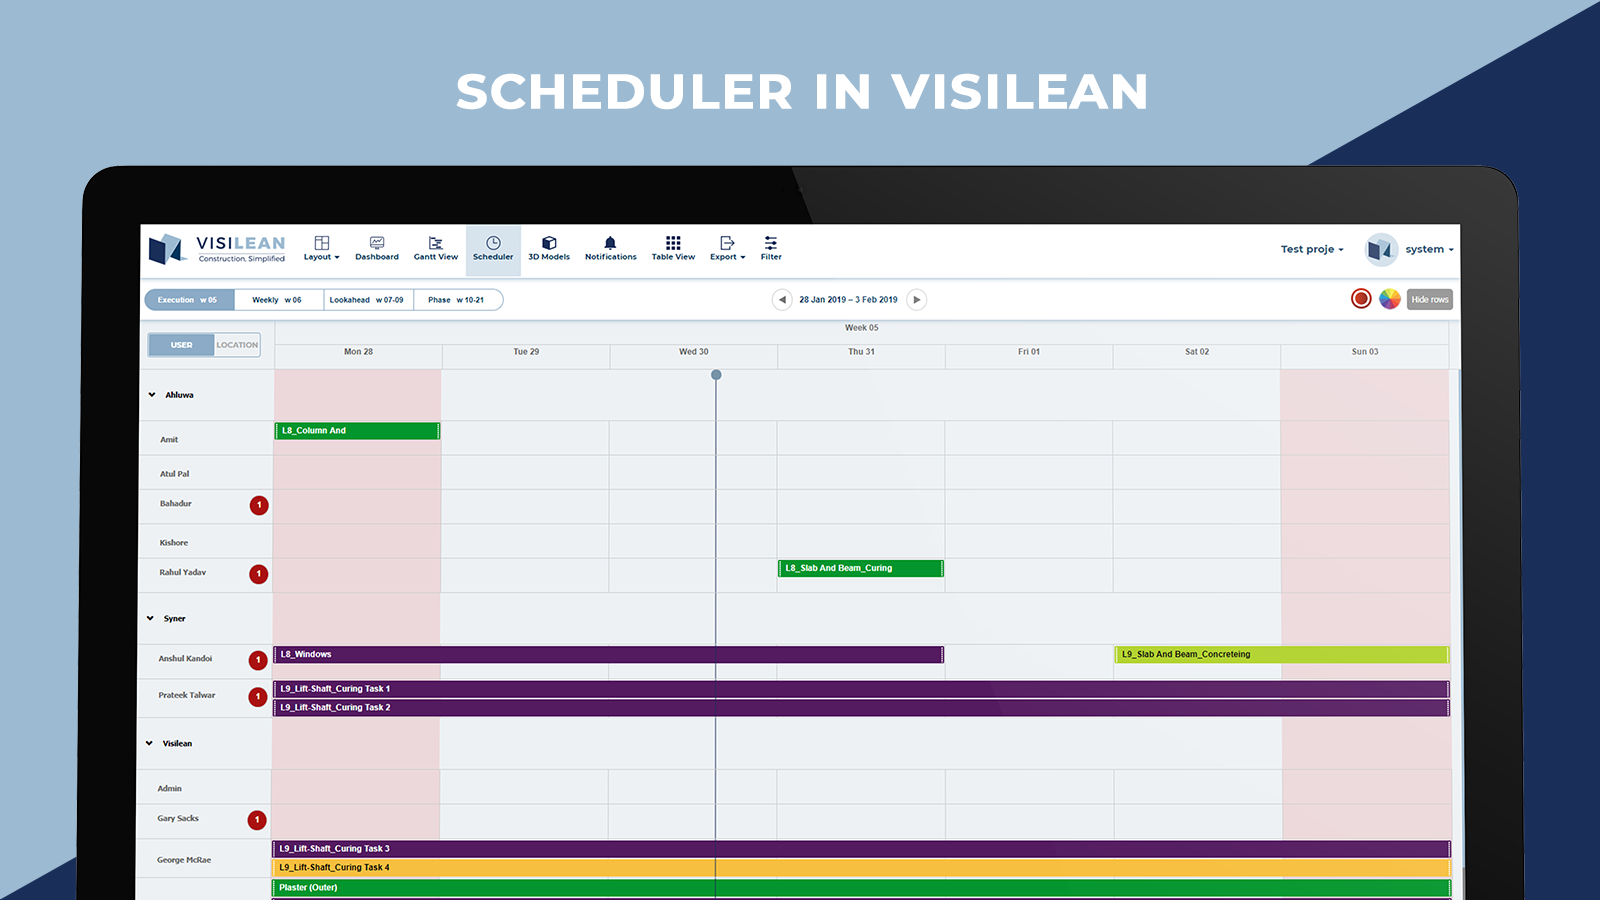 Scheduler in Visilean